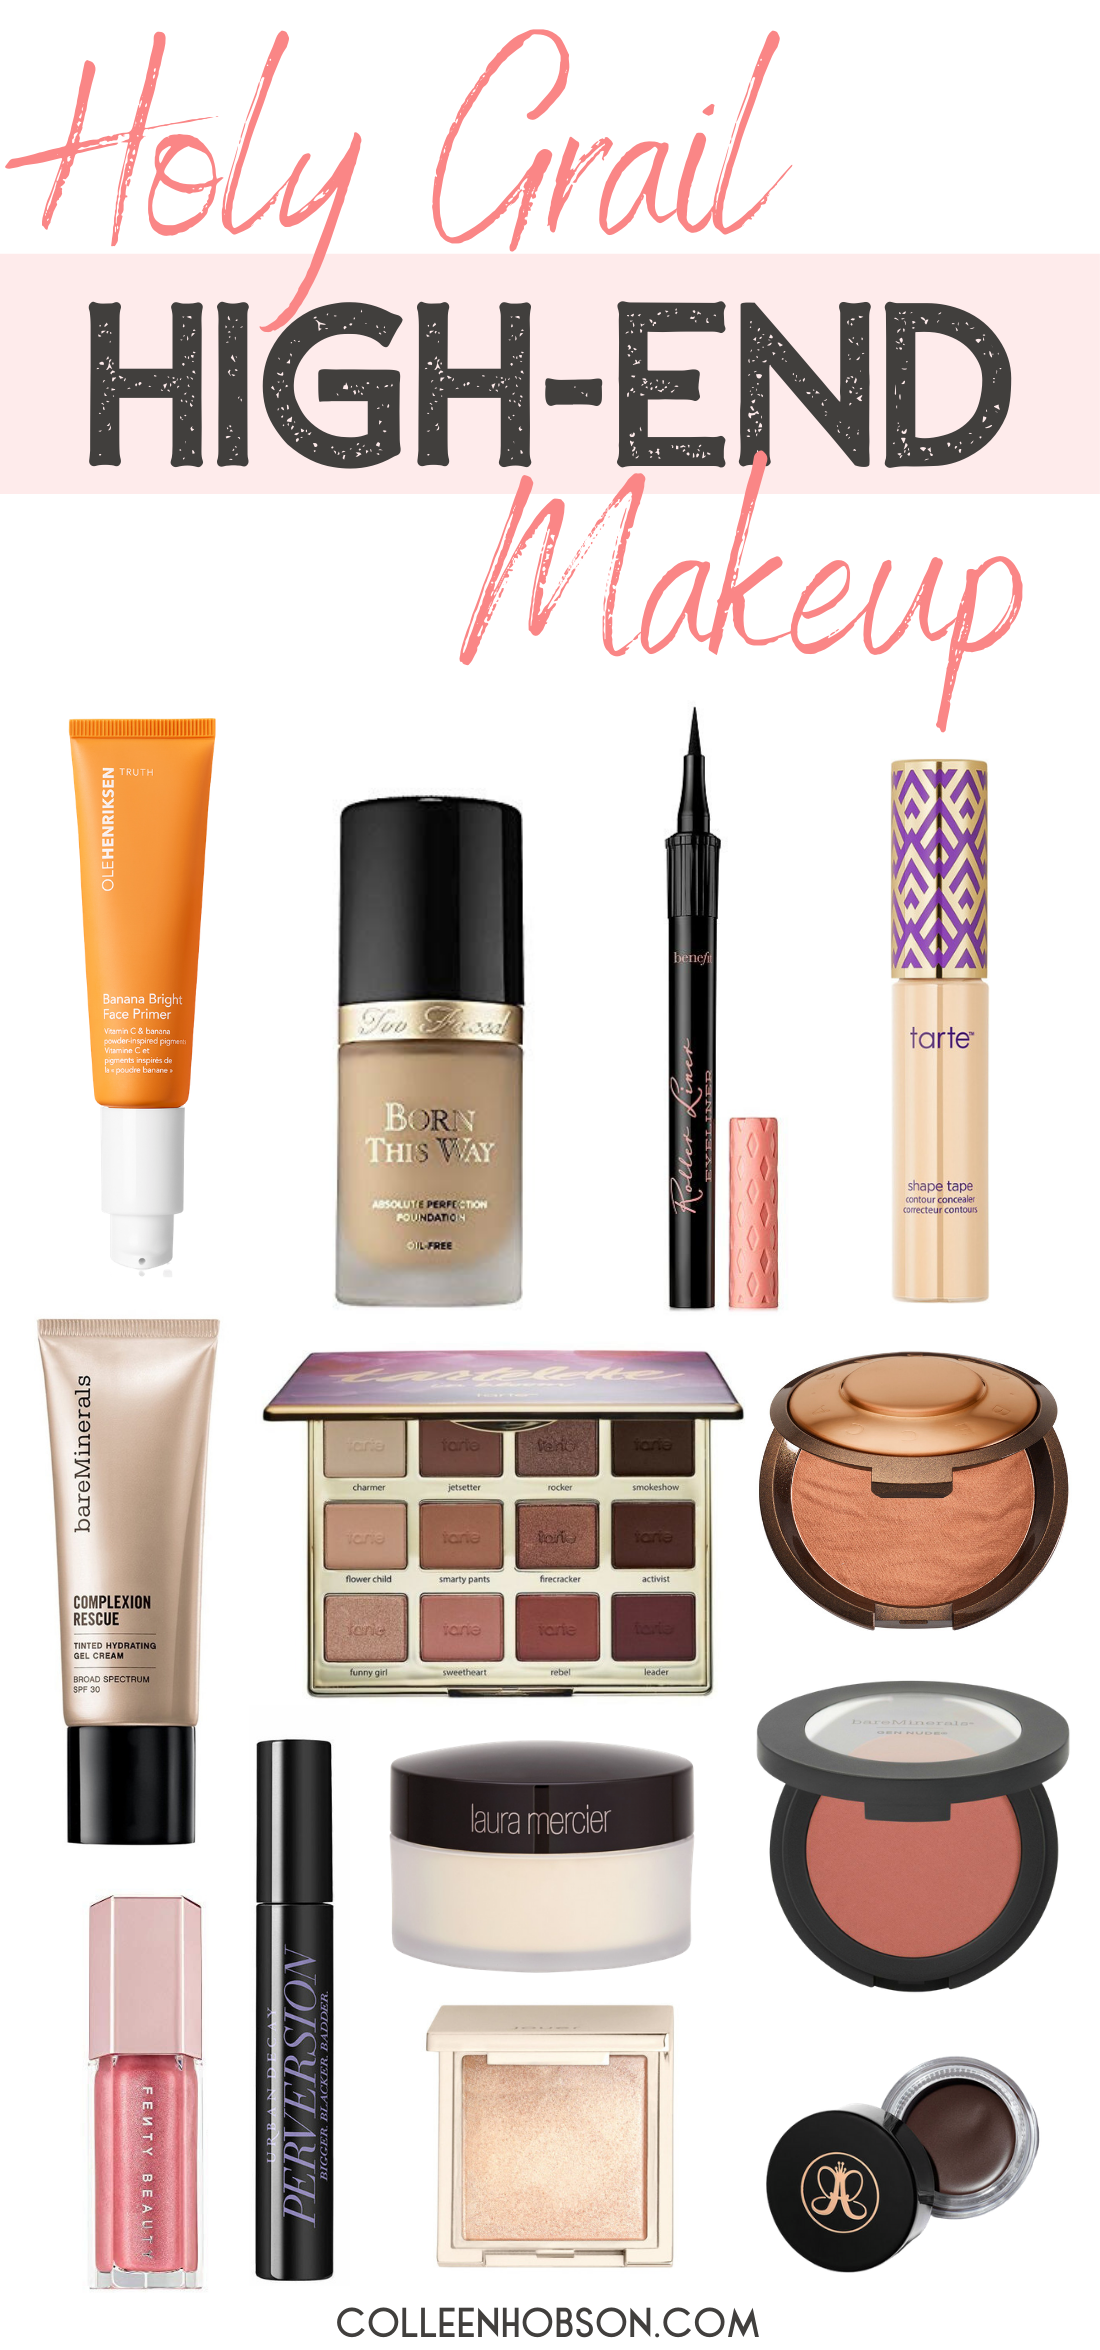 These Are The Best High End Makeup Products That Are Absolutely Worth The Money Best High End Mak In 2020 Best High End Makeup High End Makeup Top Makeup Products